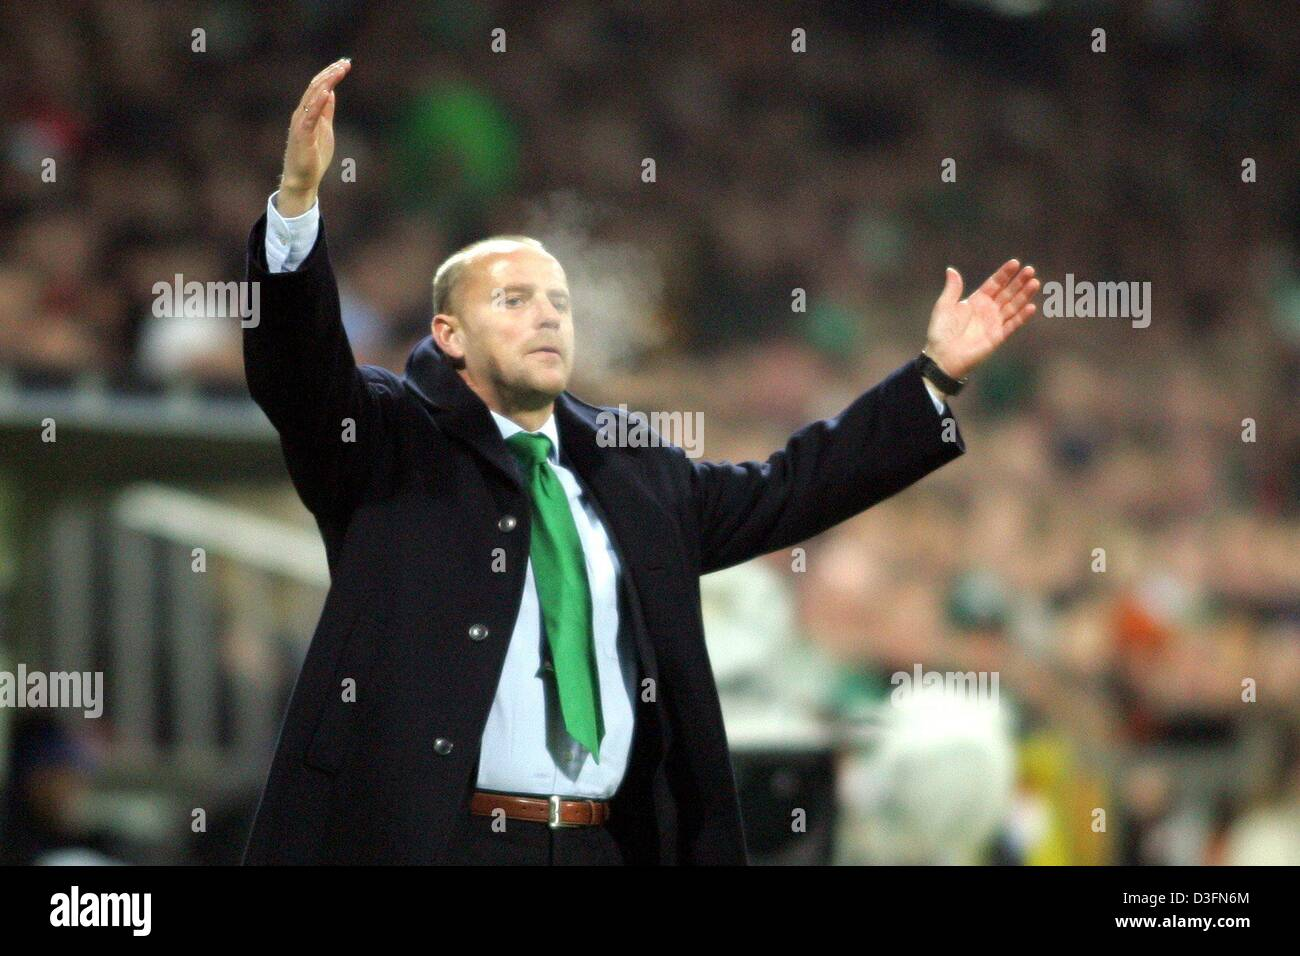 (dpa) - Bremen head coach Thomas Schaaf gestures wildly on the sidelines of the pitch during the UEFA Champions - Stock Image